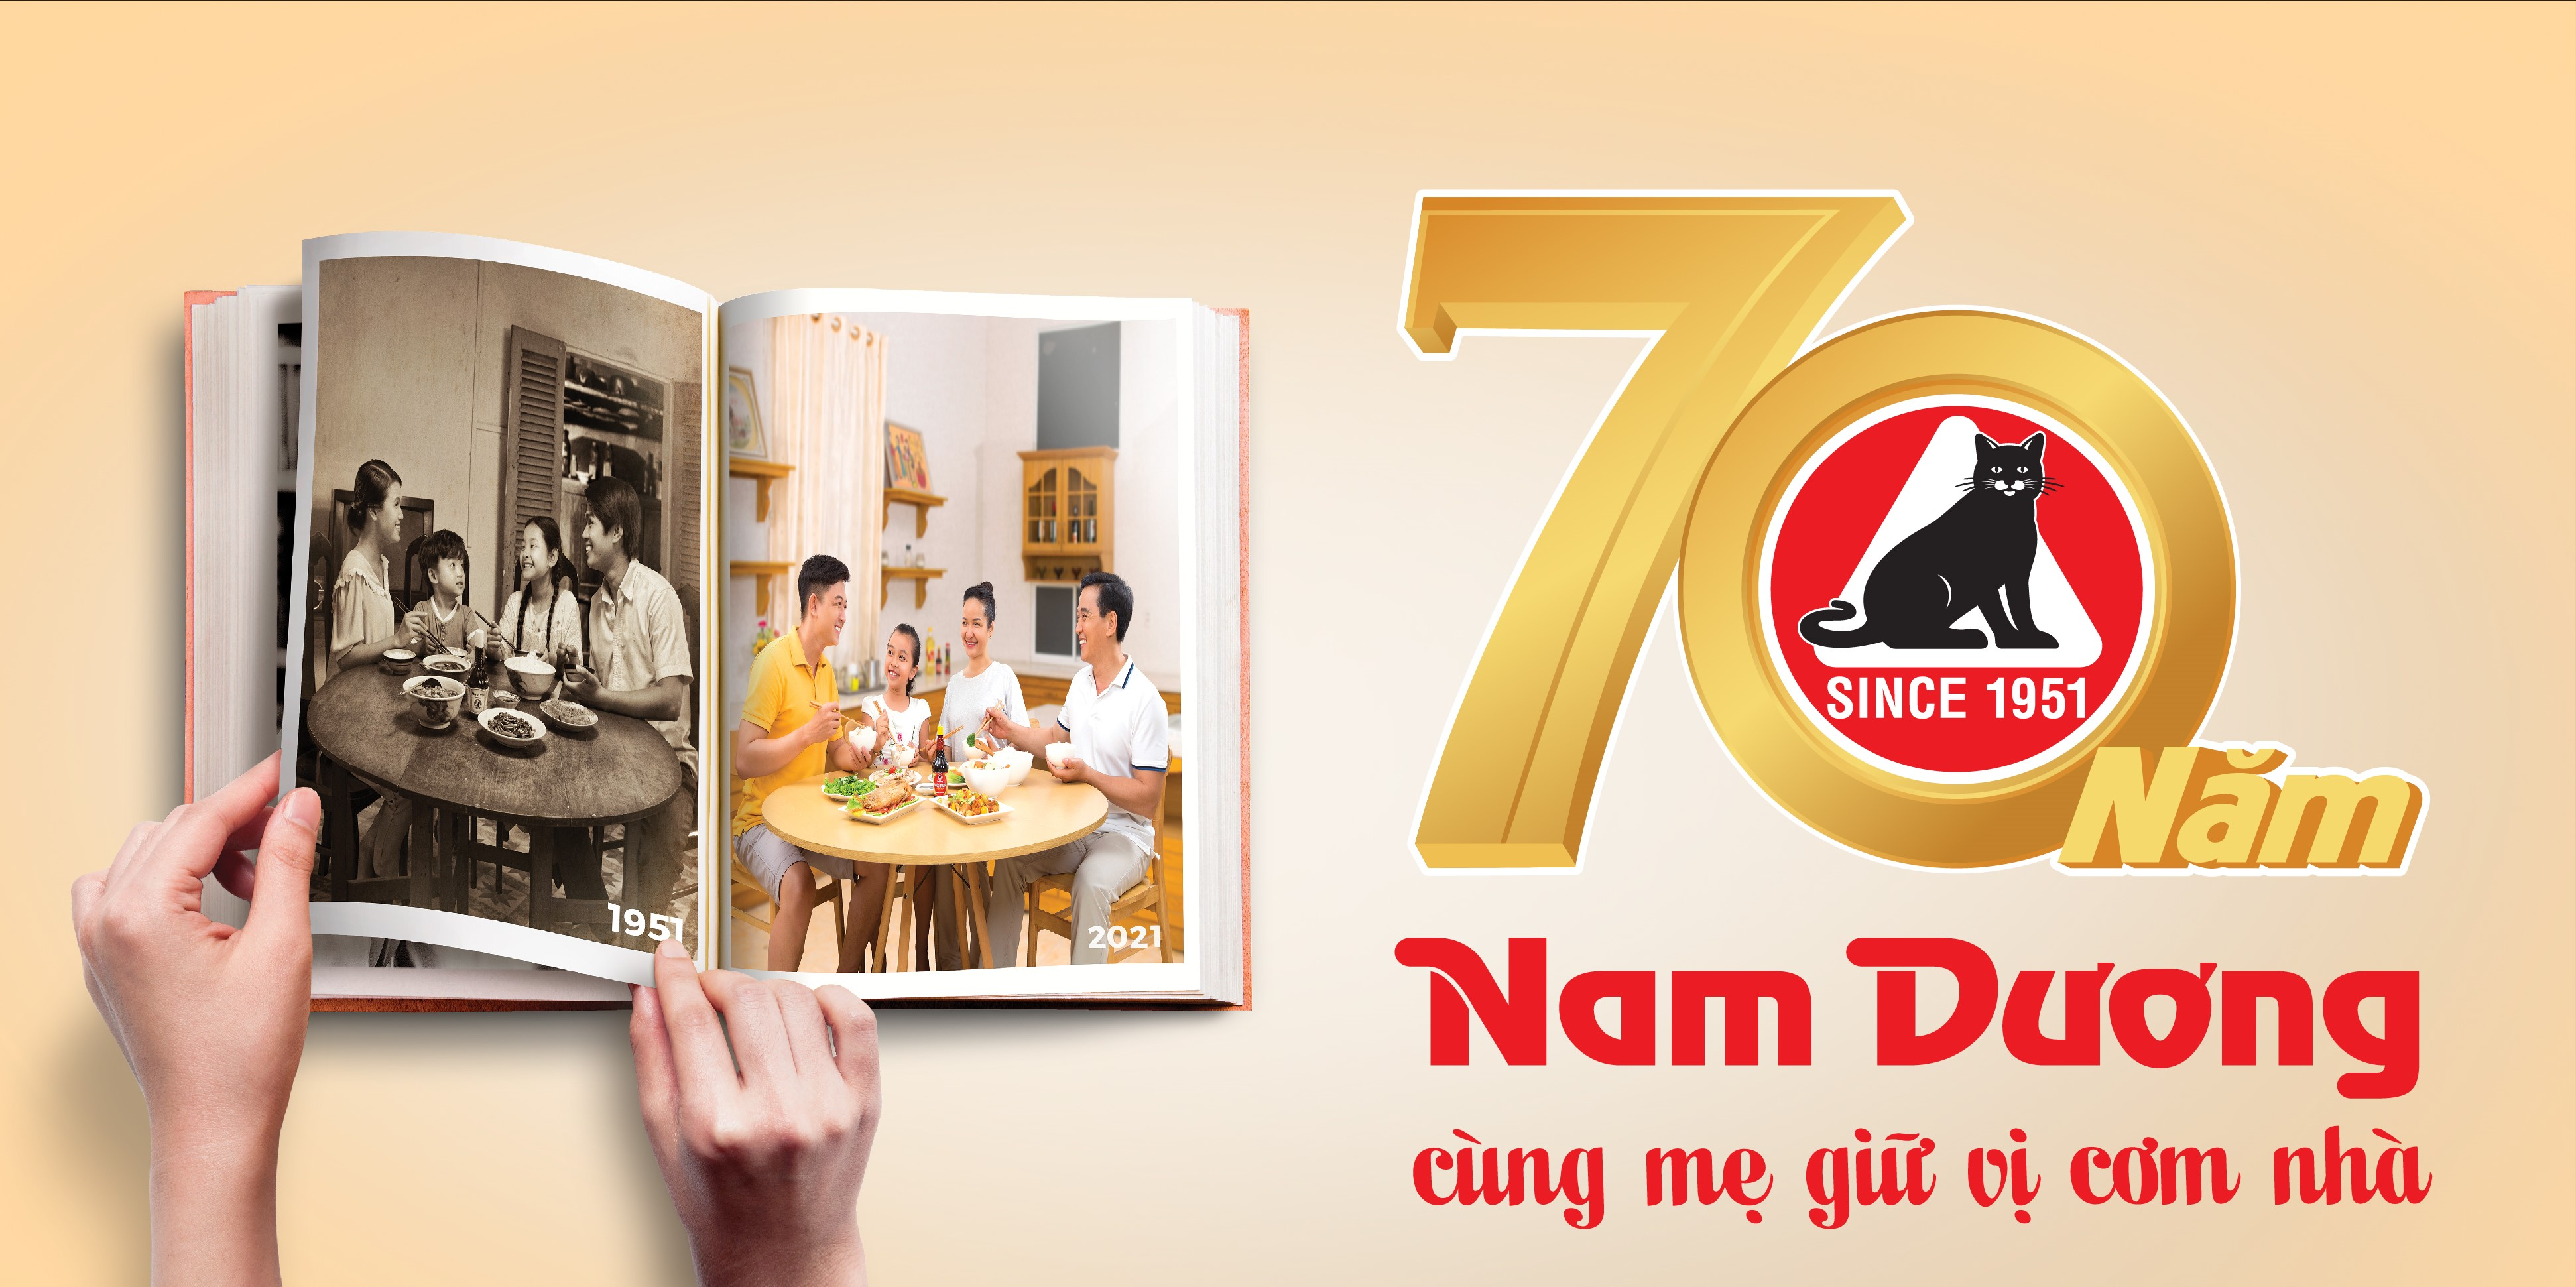 https://namduong.com.vn/wp-content/uploads/2021/05/Pop-up-tiếng-việt-cut.jpg